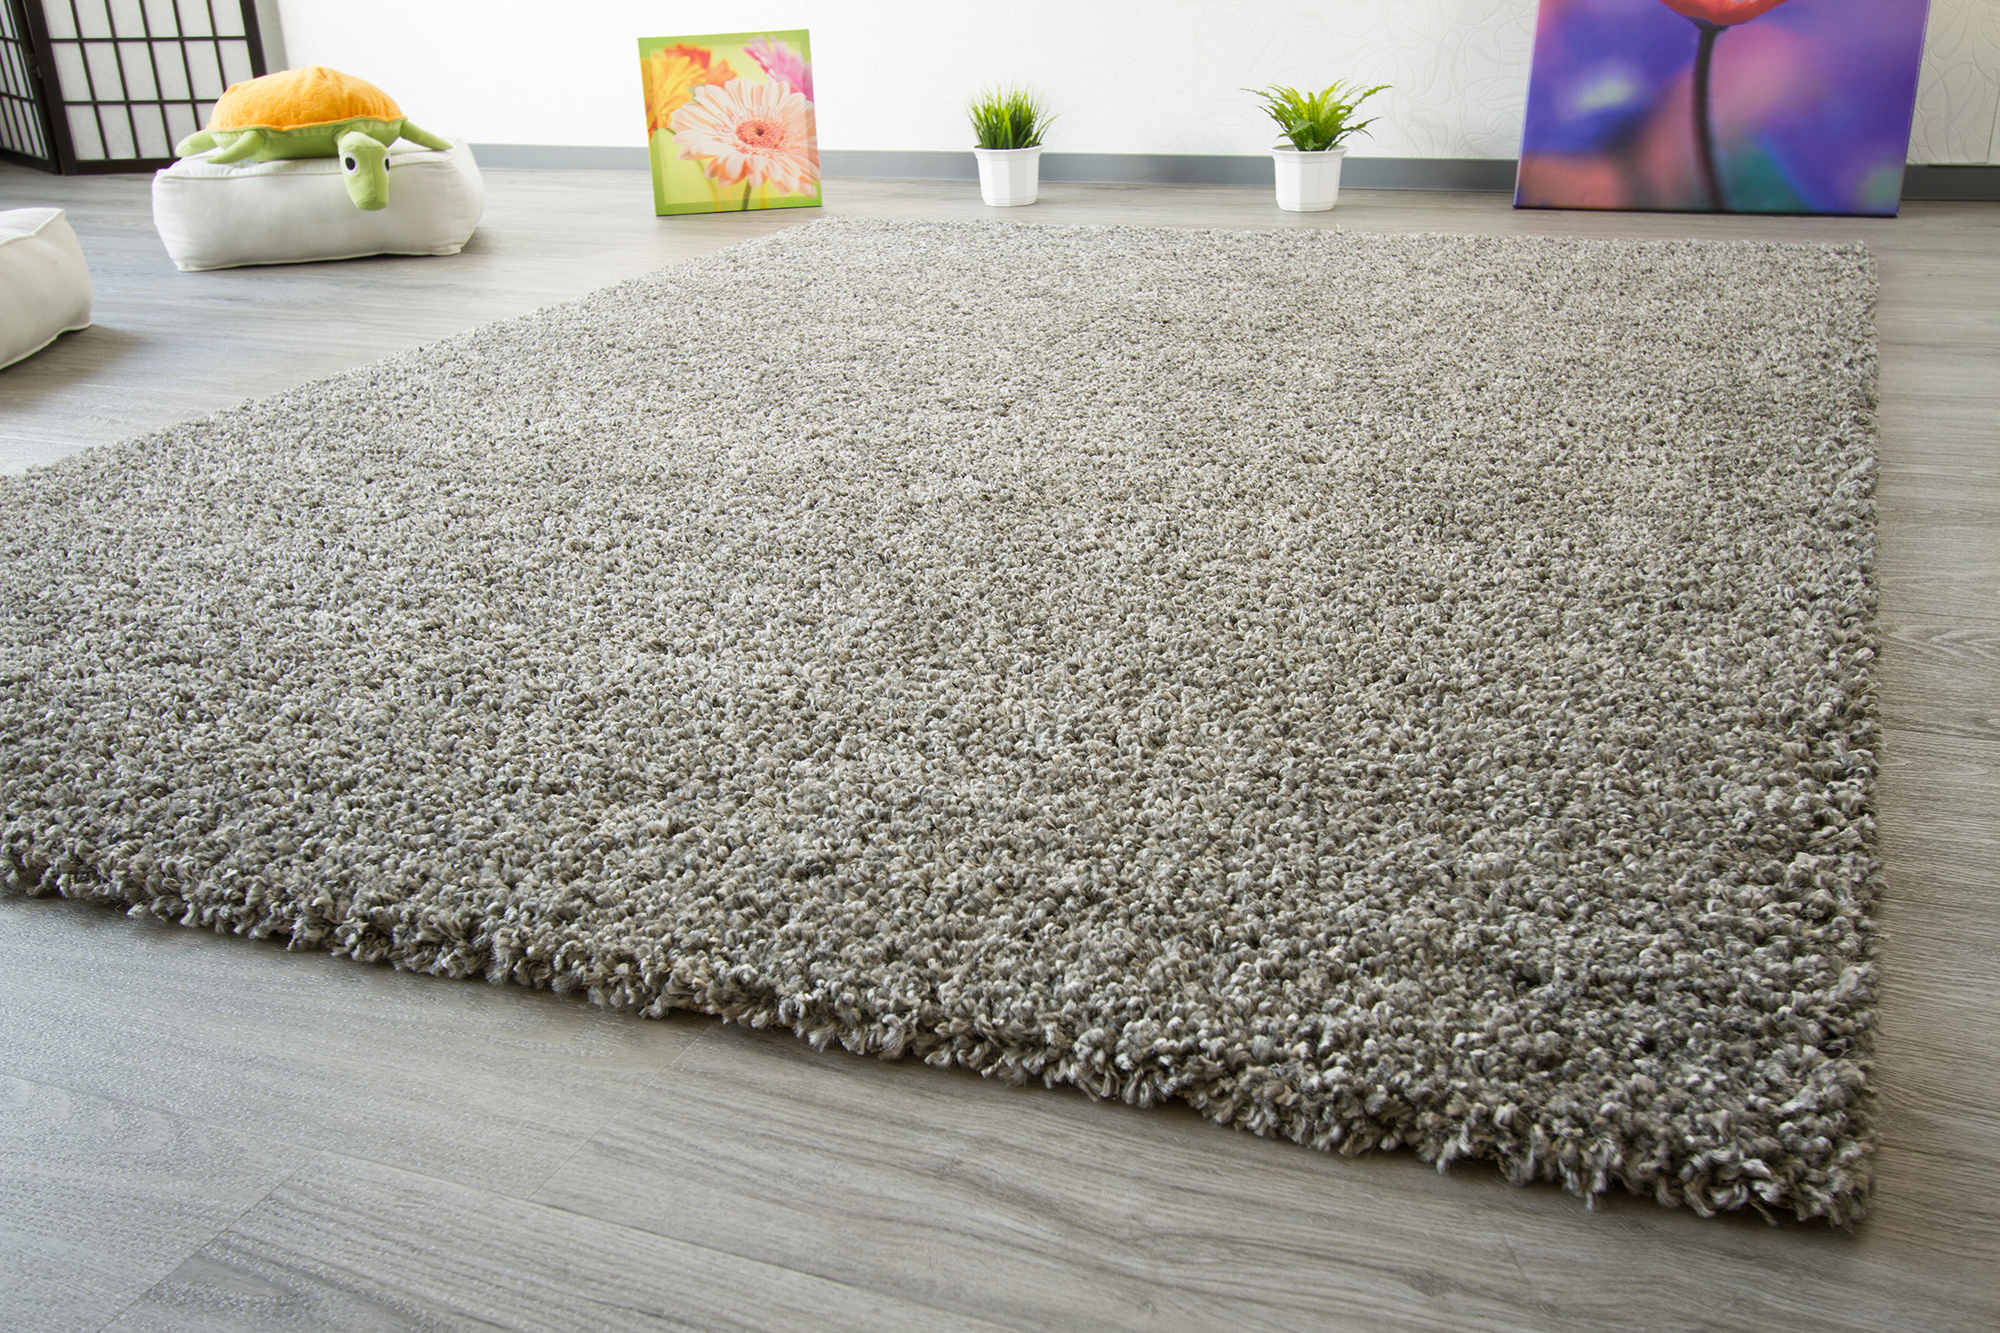 Thick Plain Shaggy Rug Funny Soft Touch Non Shedding 3cm